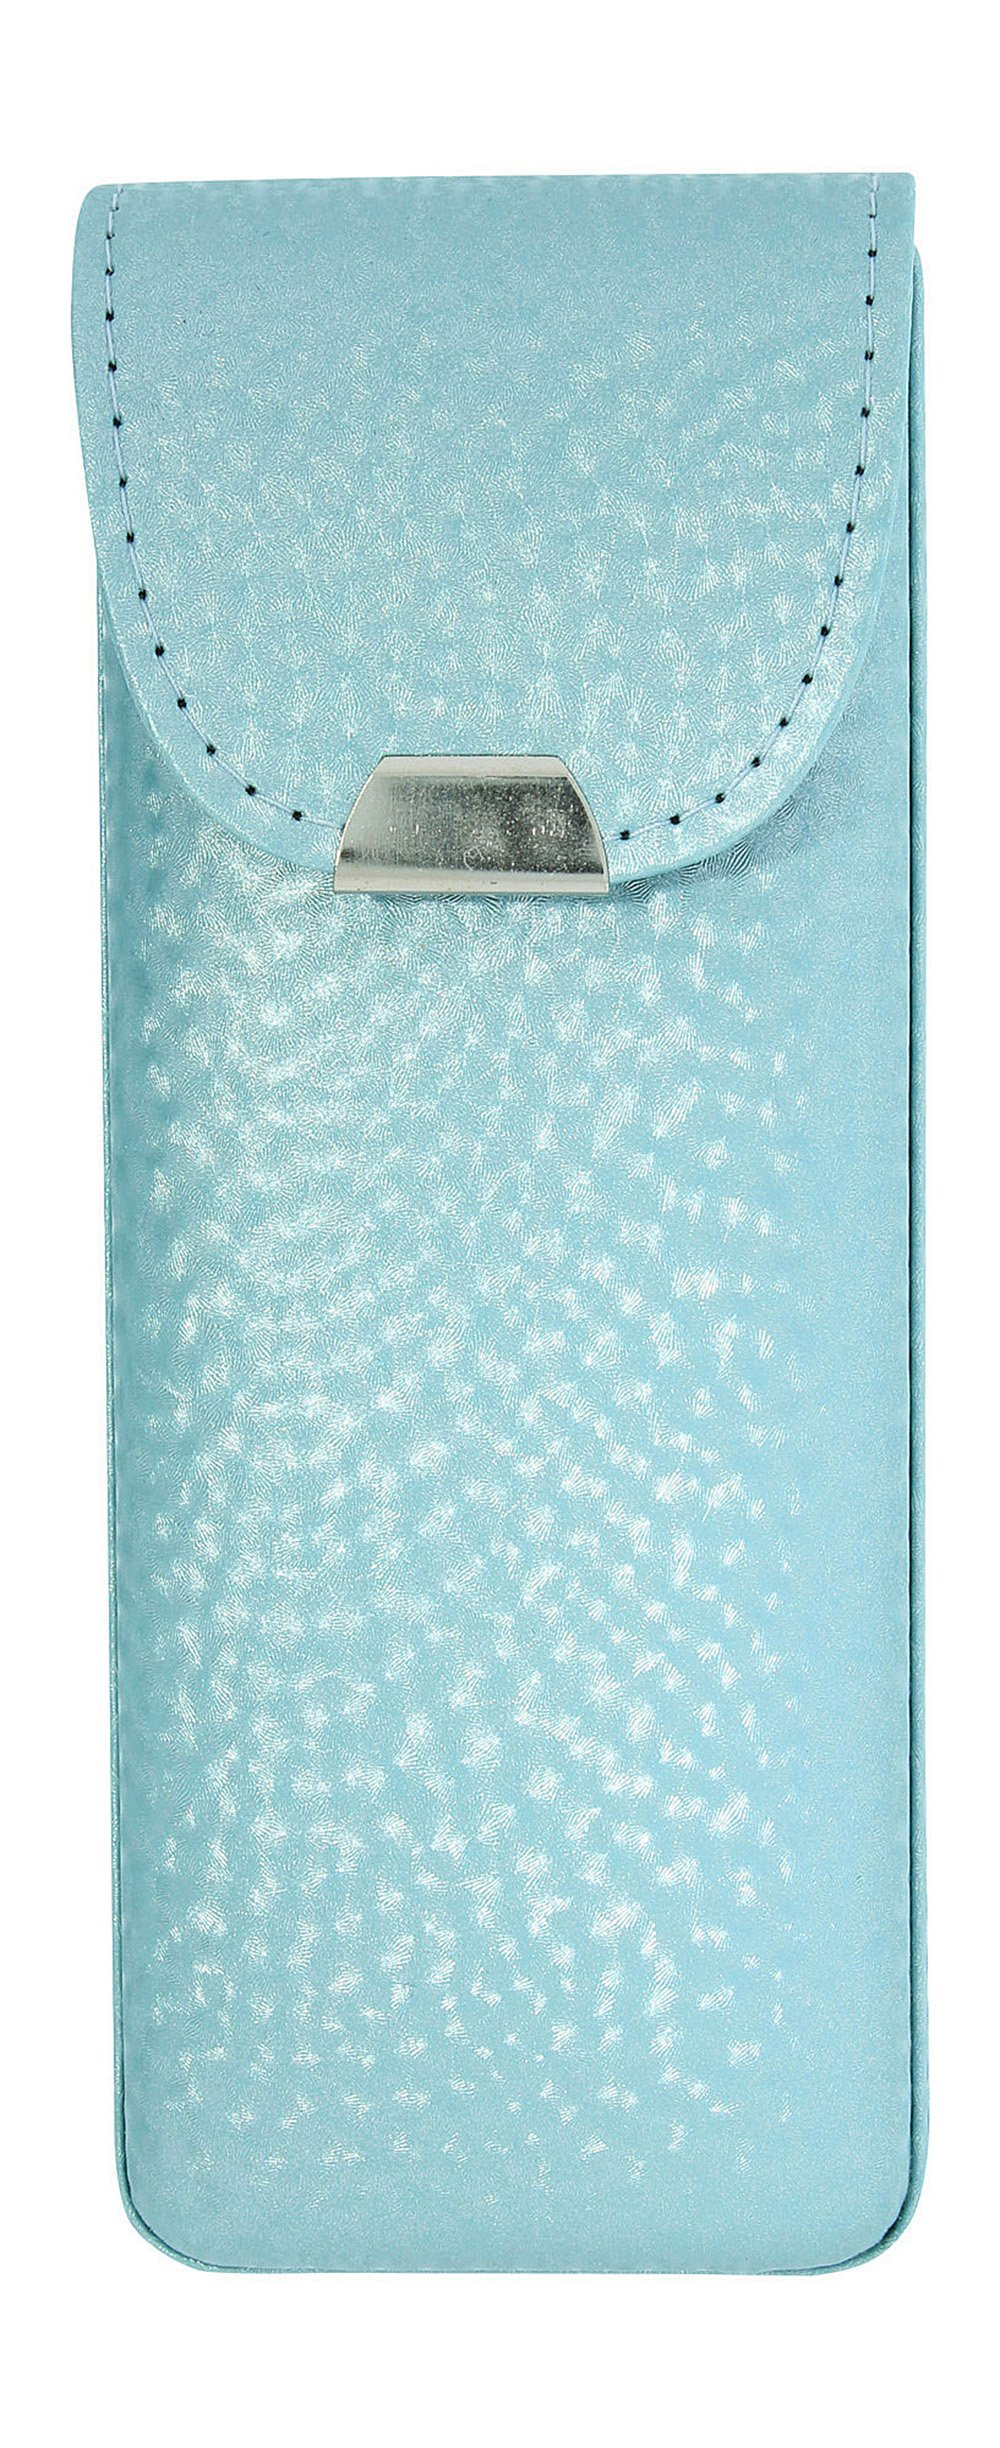 Eyeglass Case Top Snap Closure Metal Embellishment Pearly Shade Of Blue